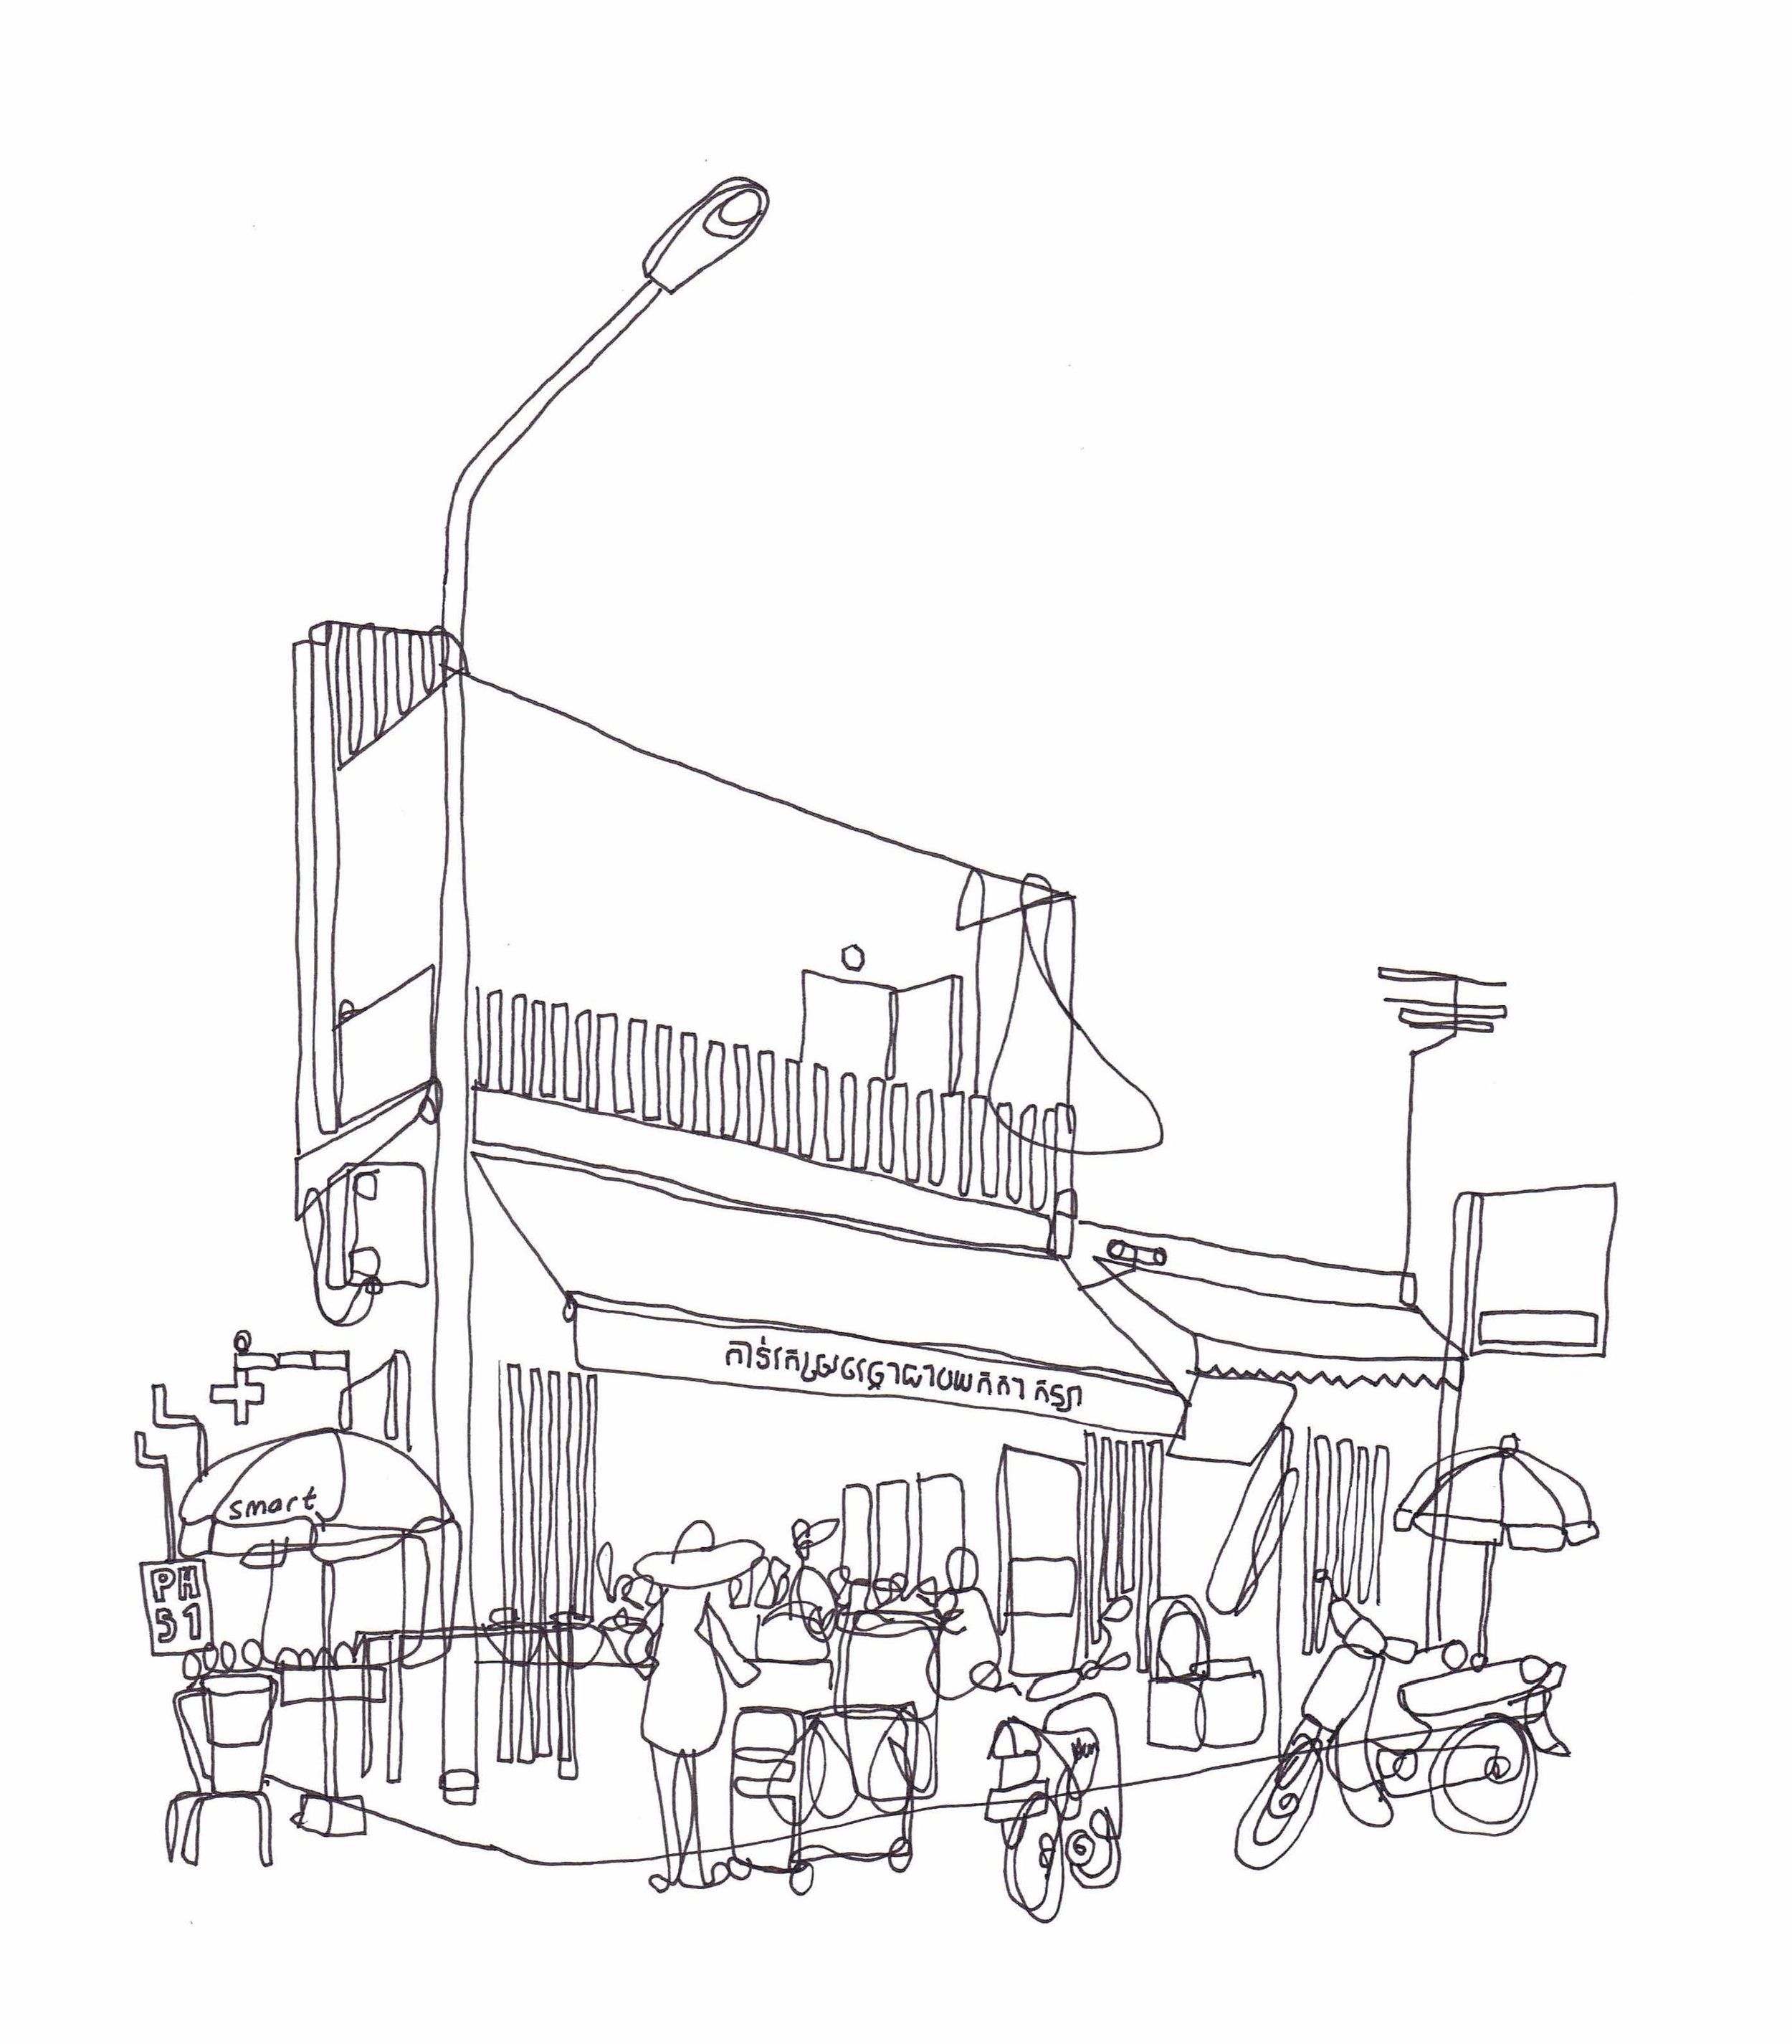 cambodia sketches 2015_Page_09.jpg